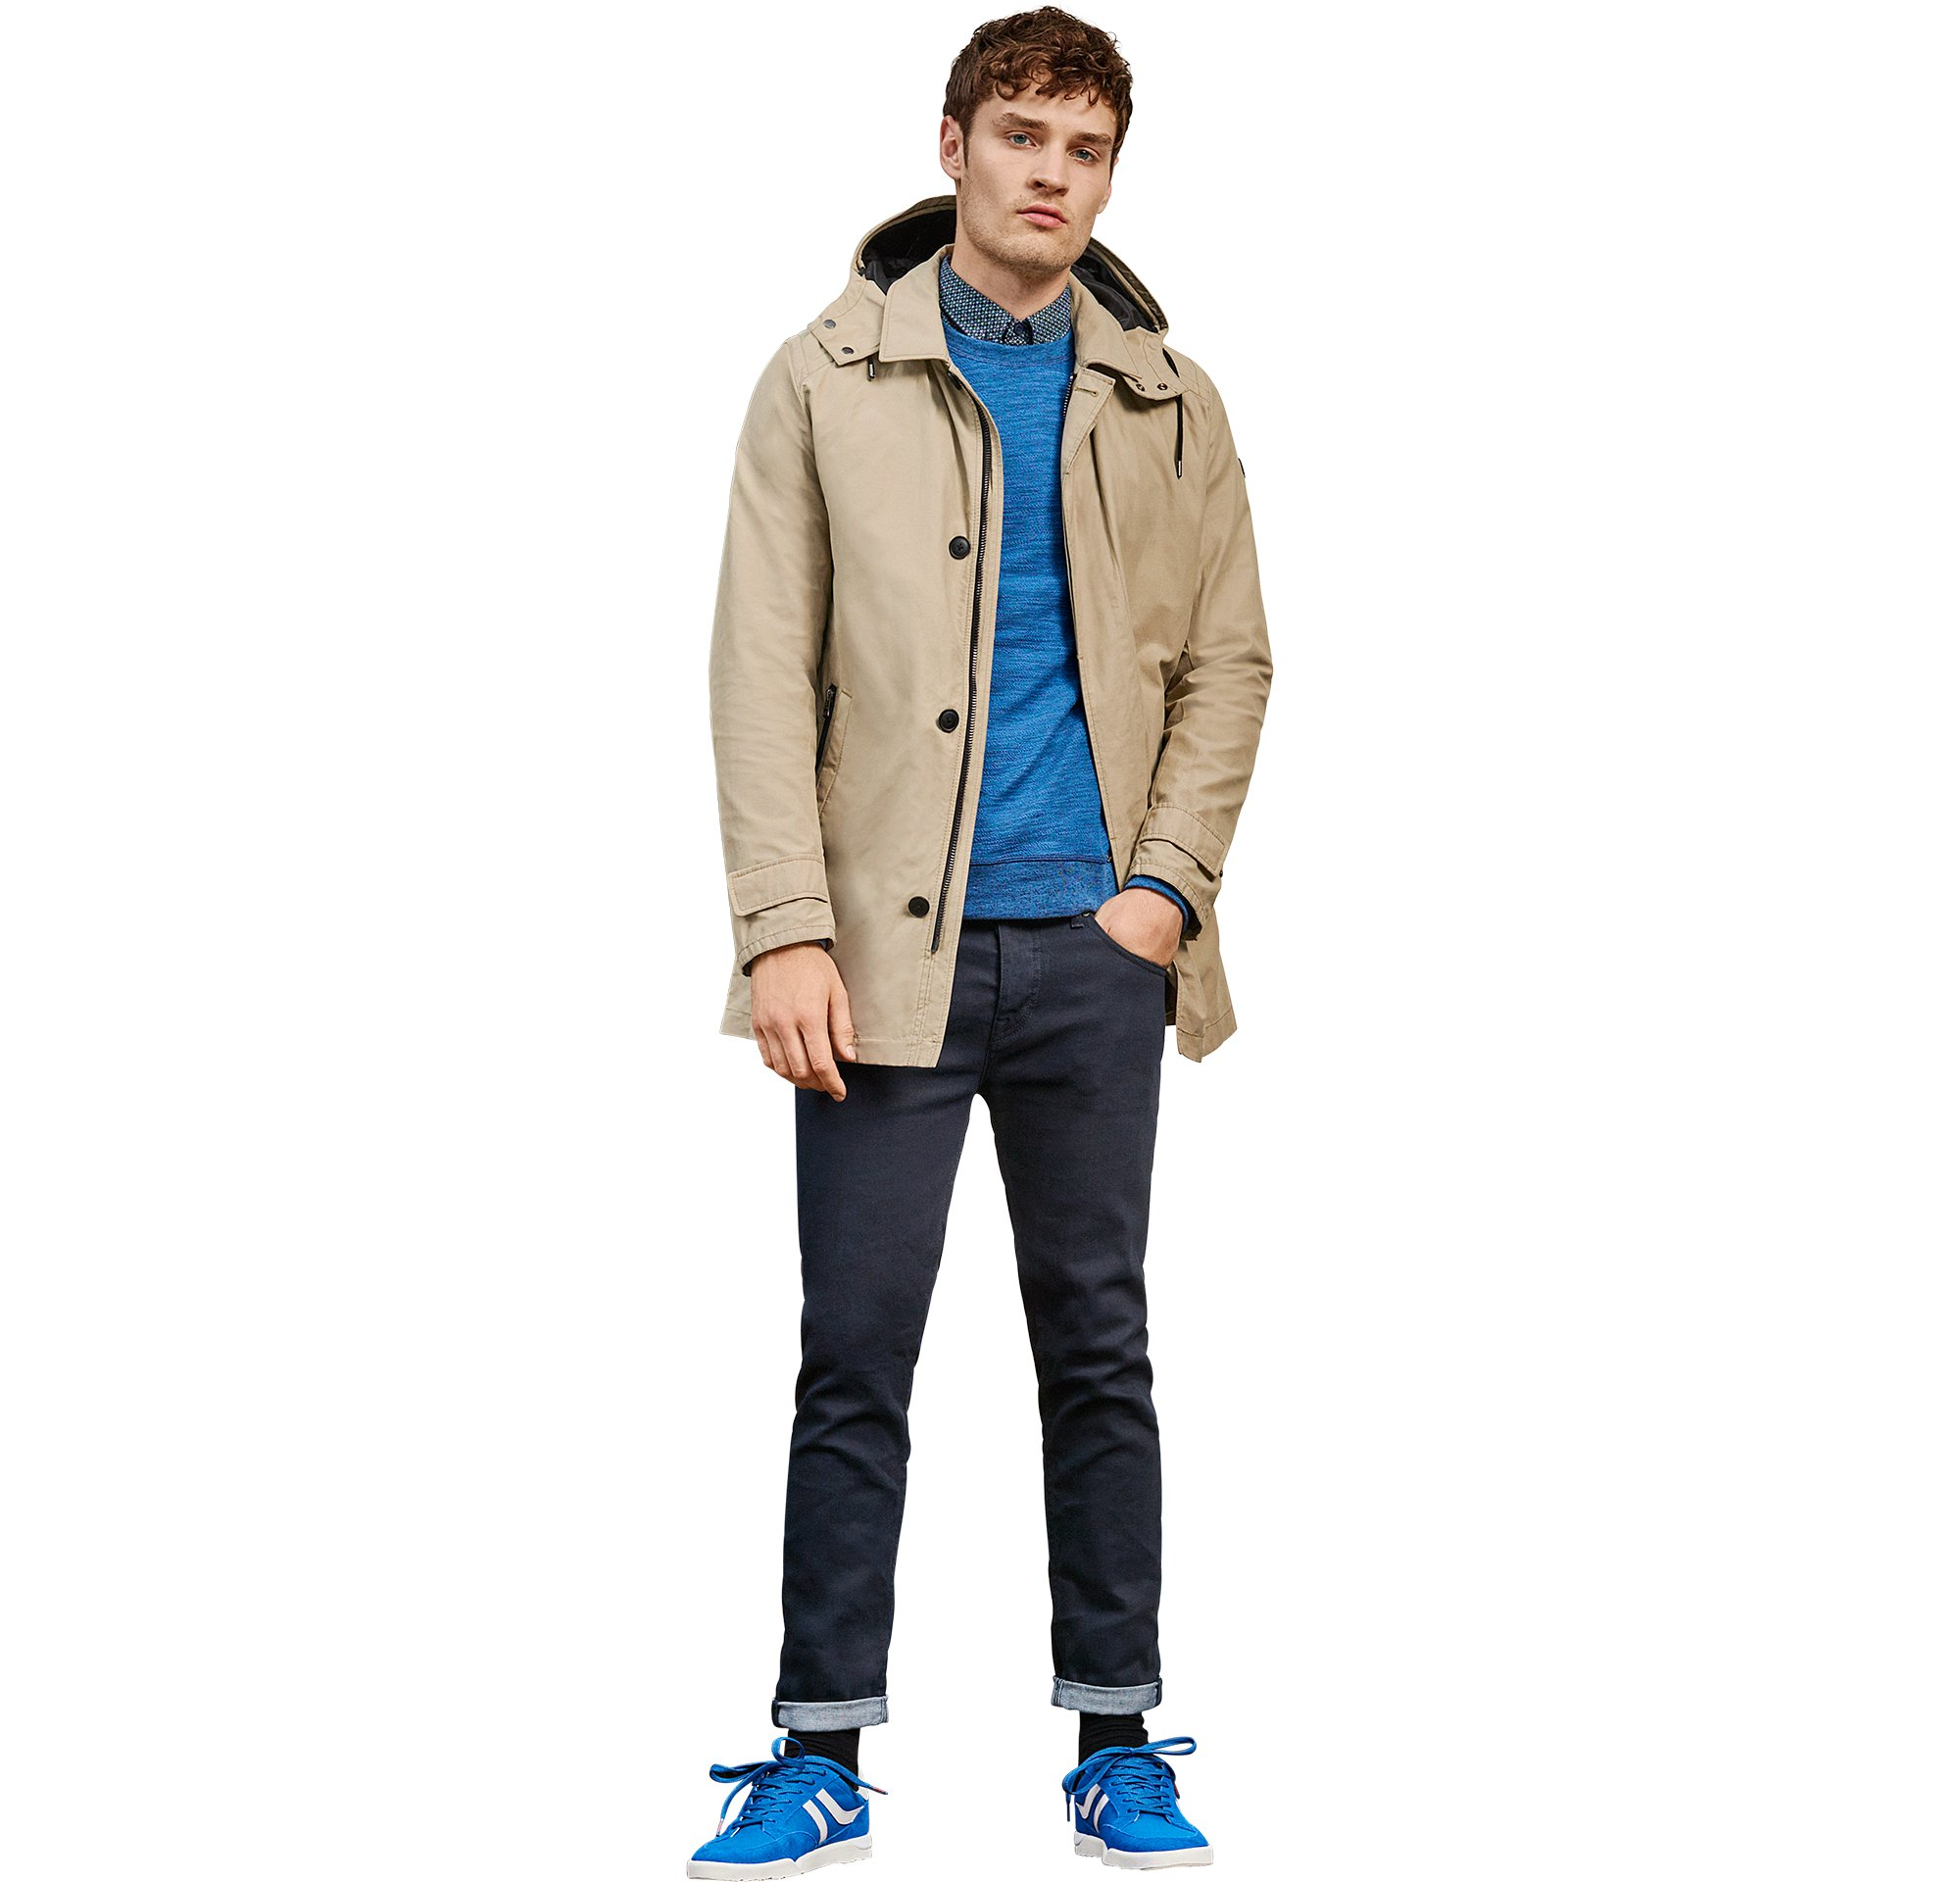 Outerwear over blue jersey and blue shirt with jeans and shoes by BOSS Orange